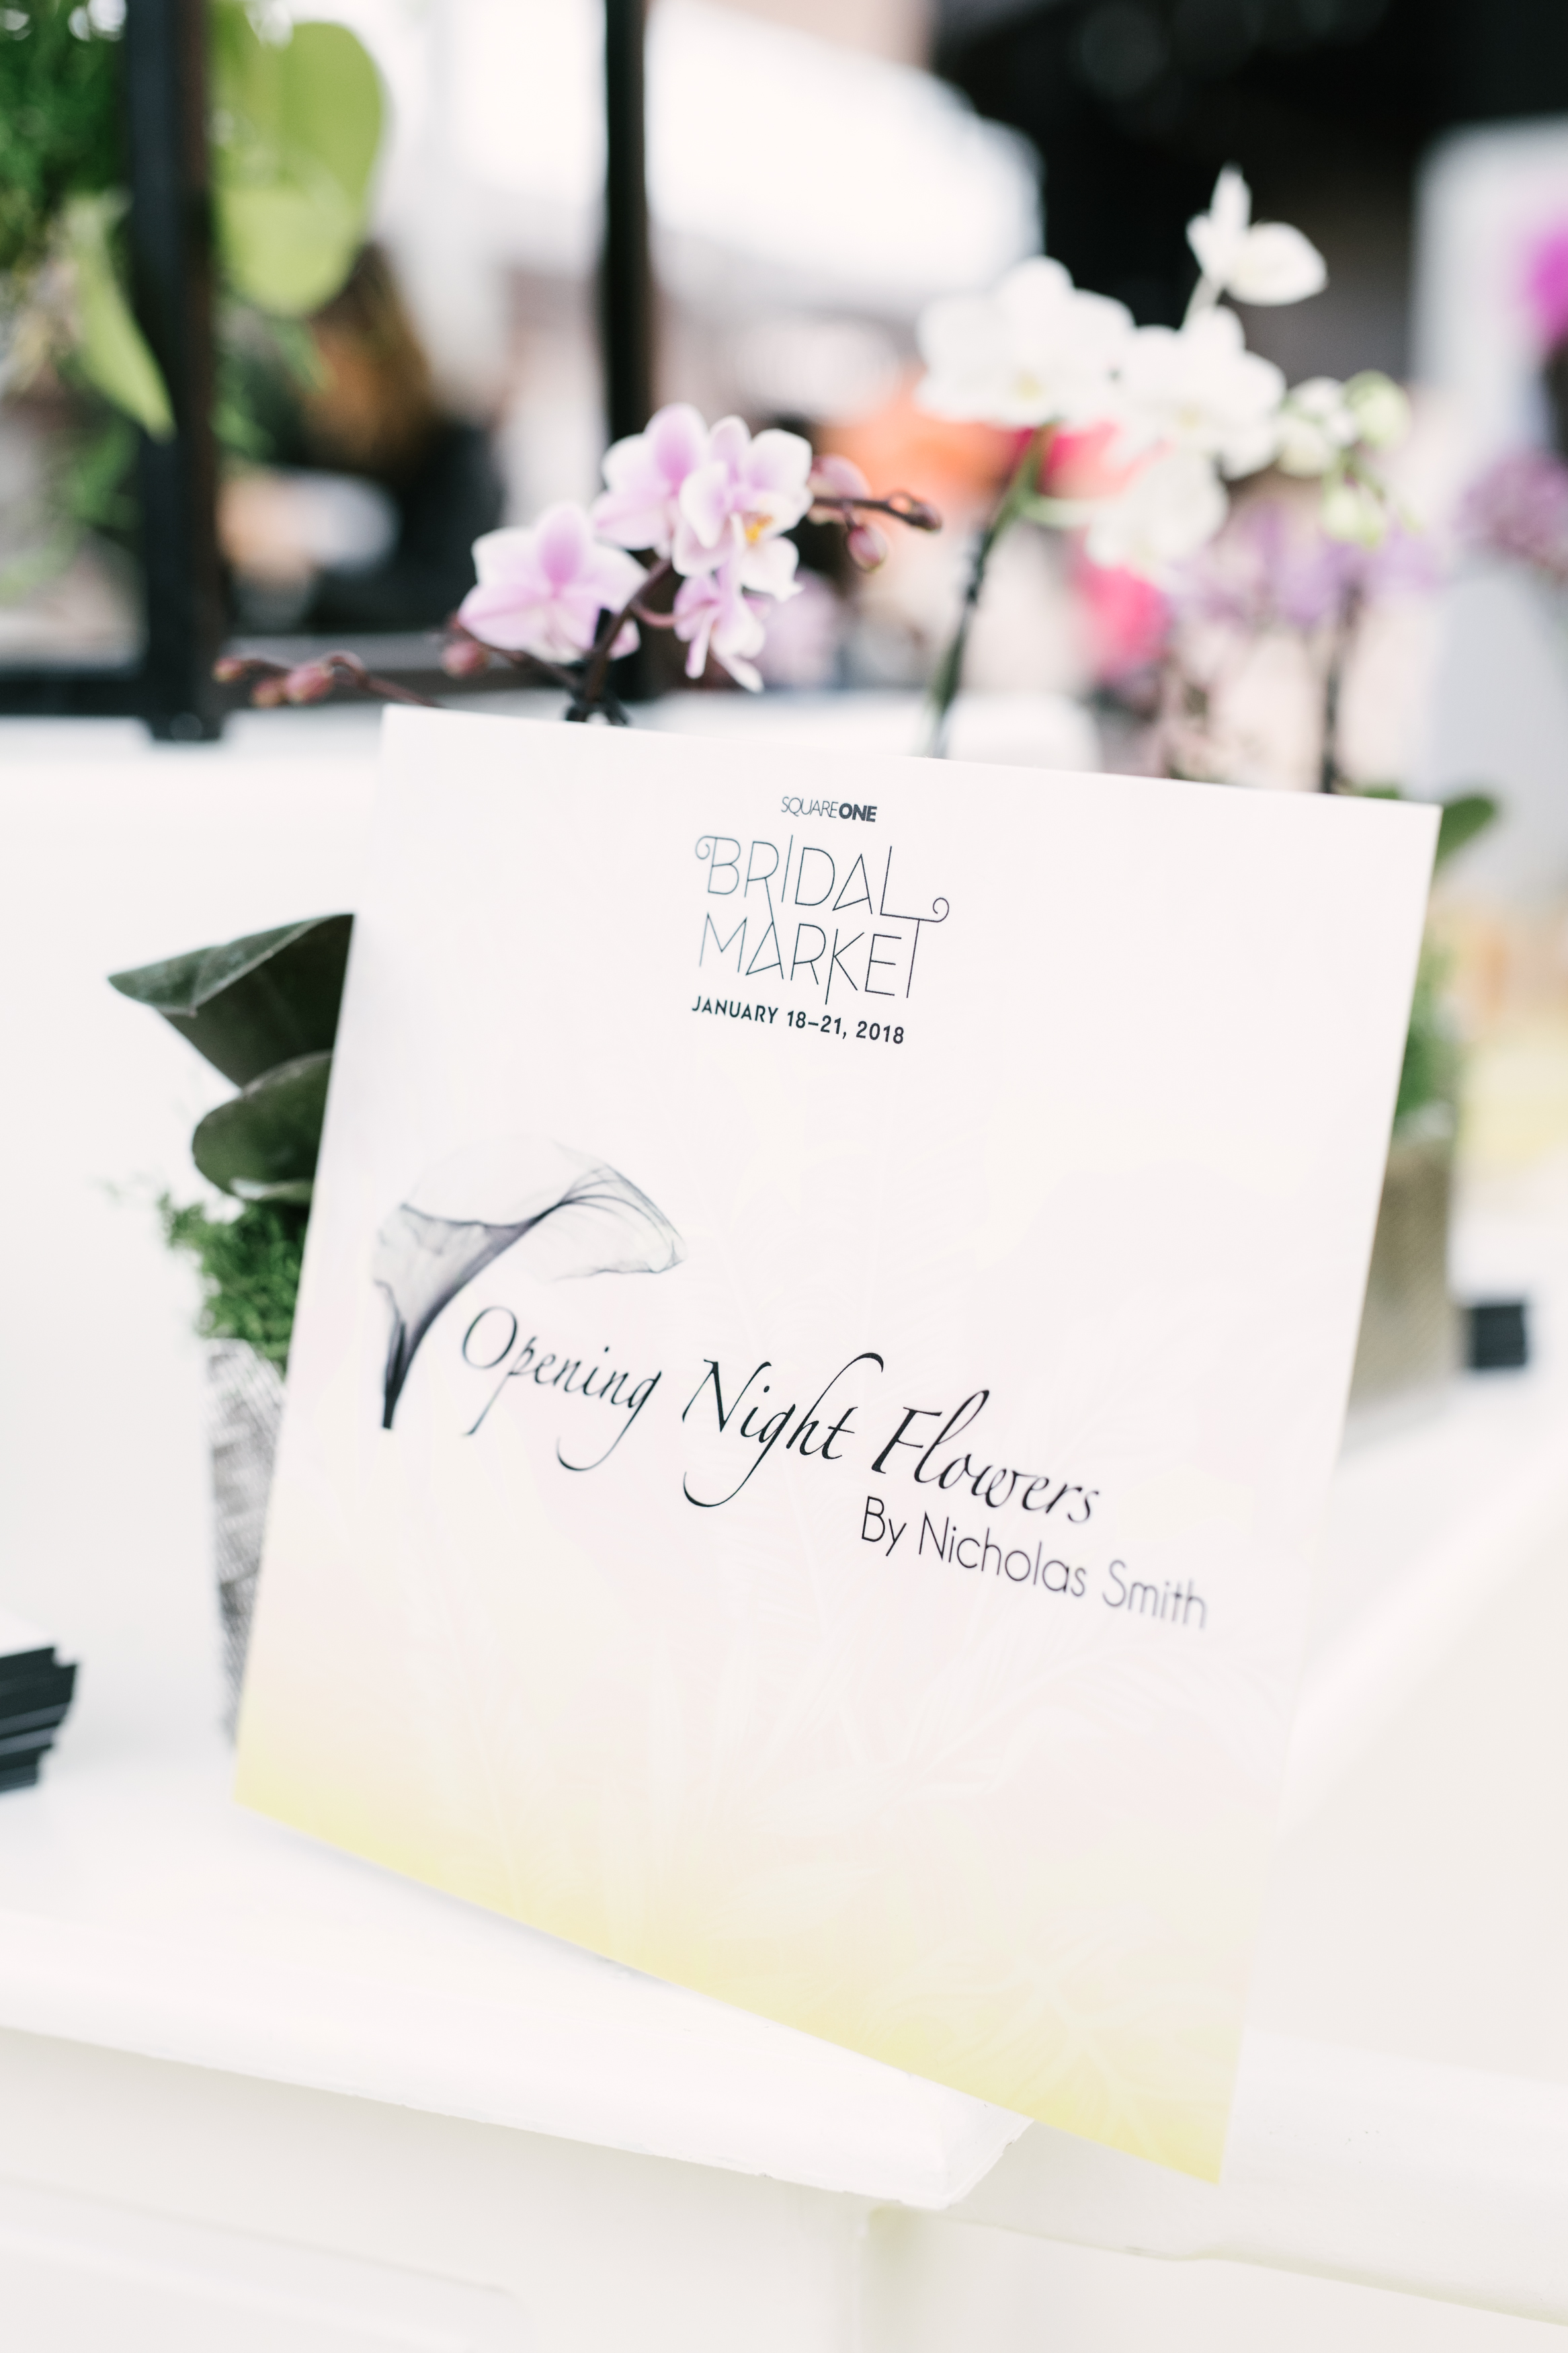 August In Bloom - Opening Night flowers sign - #SQ1Bridal (Square One Shopping Centre)